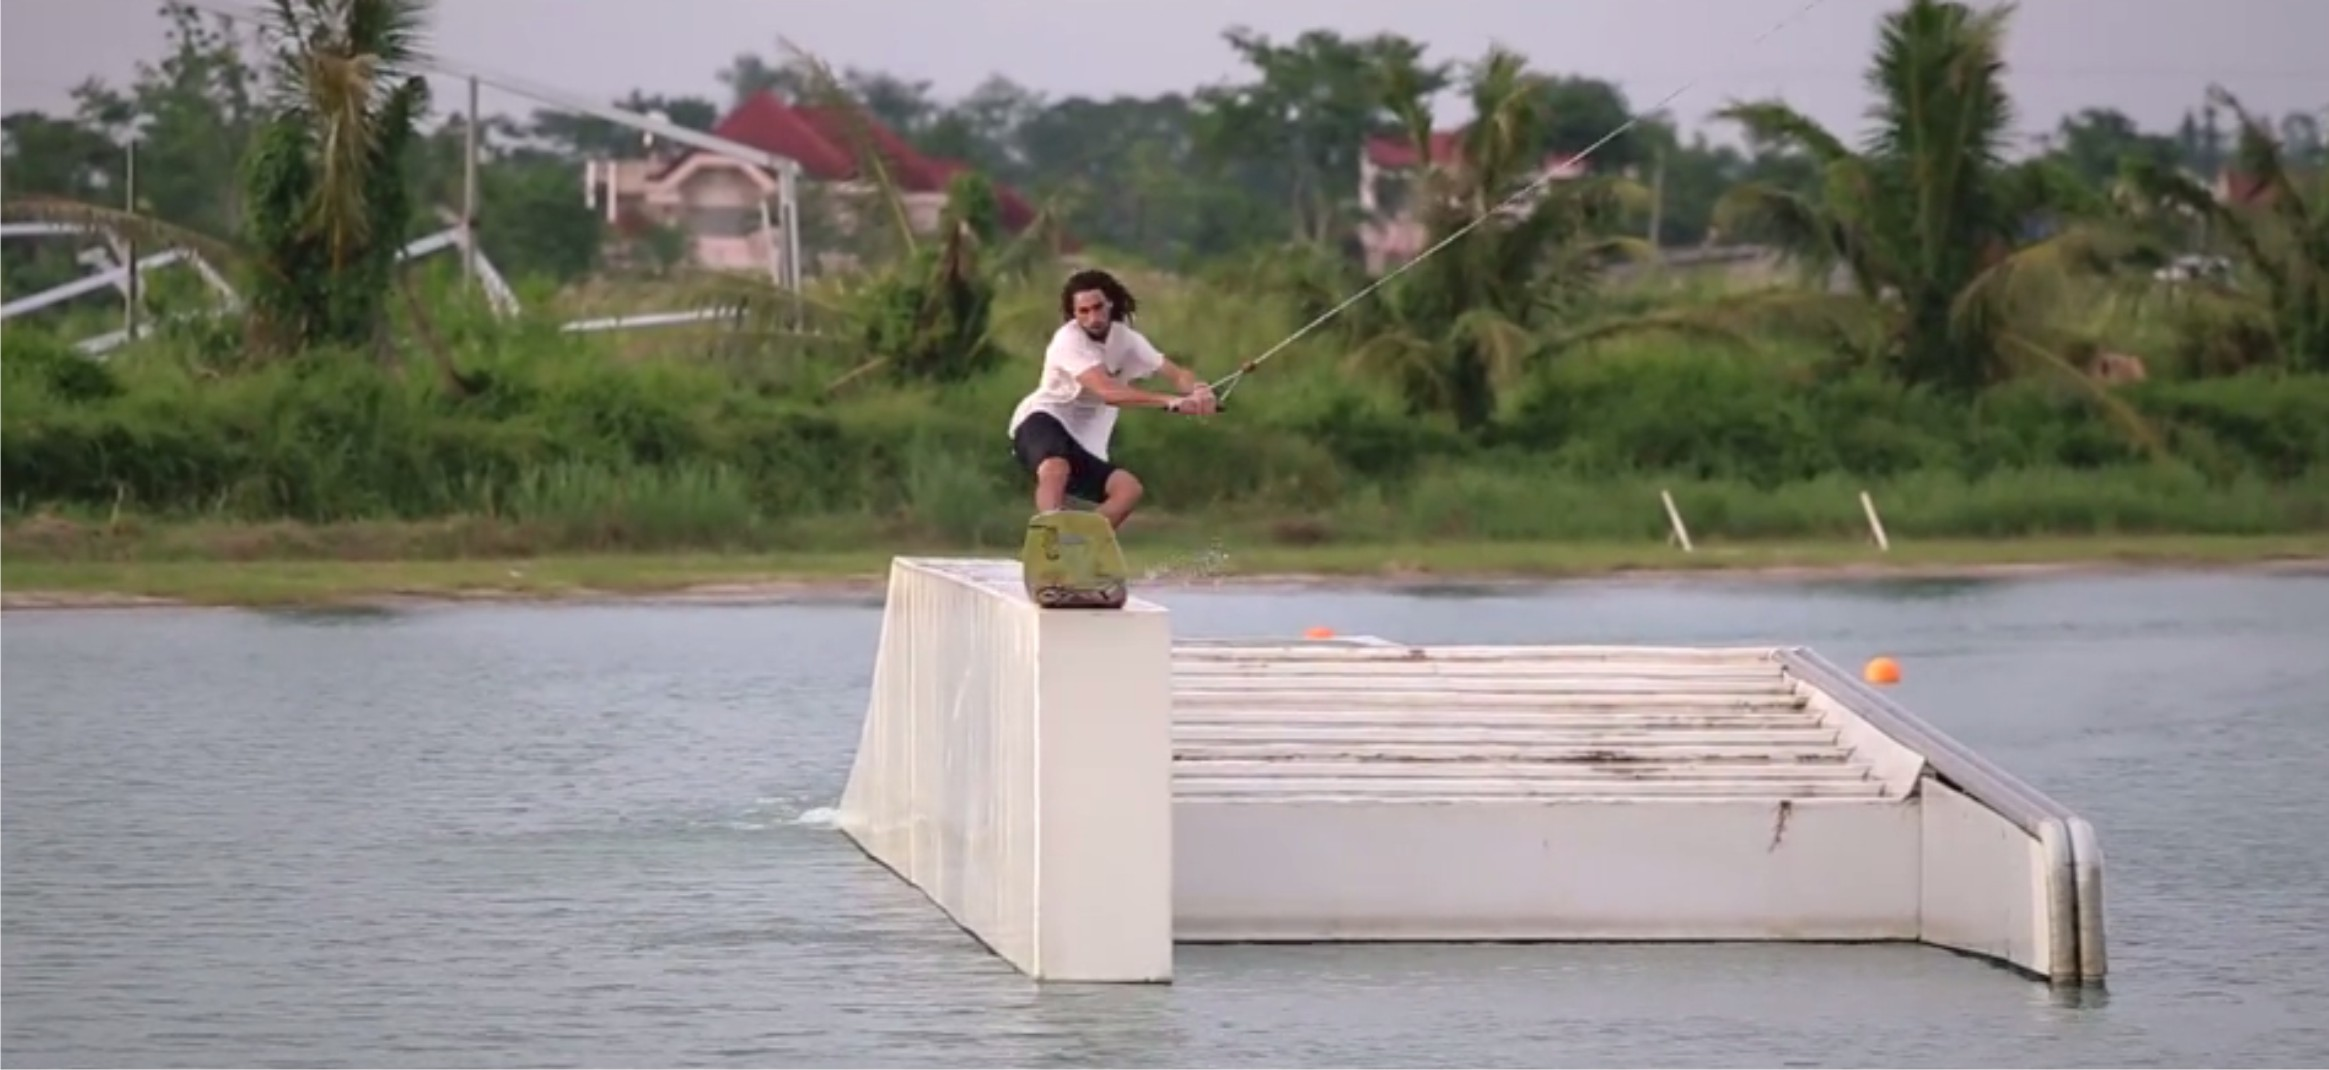 Cameron Graham wakeboarding edit from the Philippines